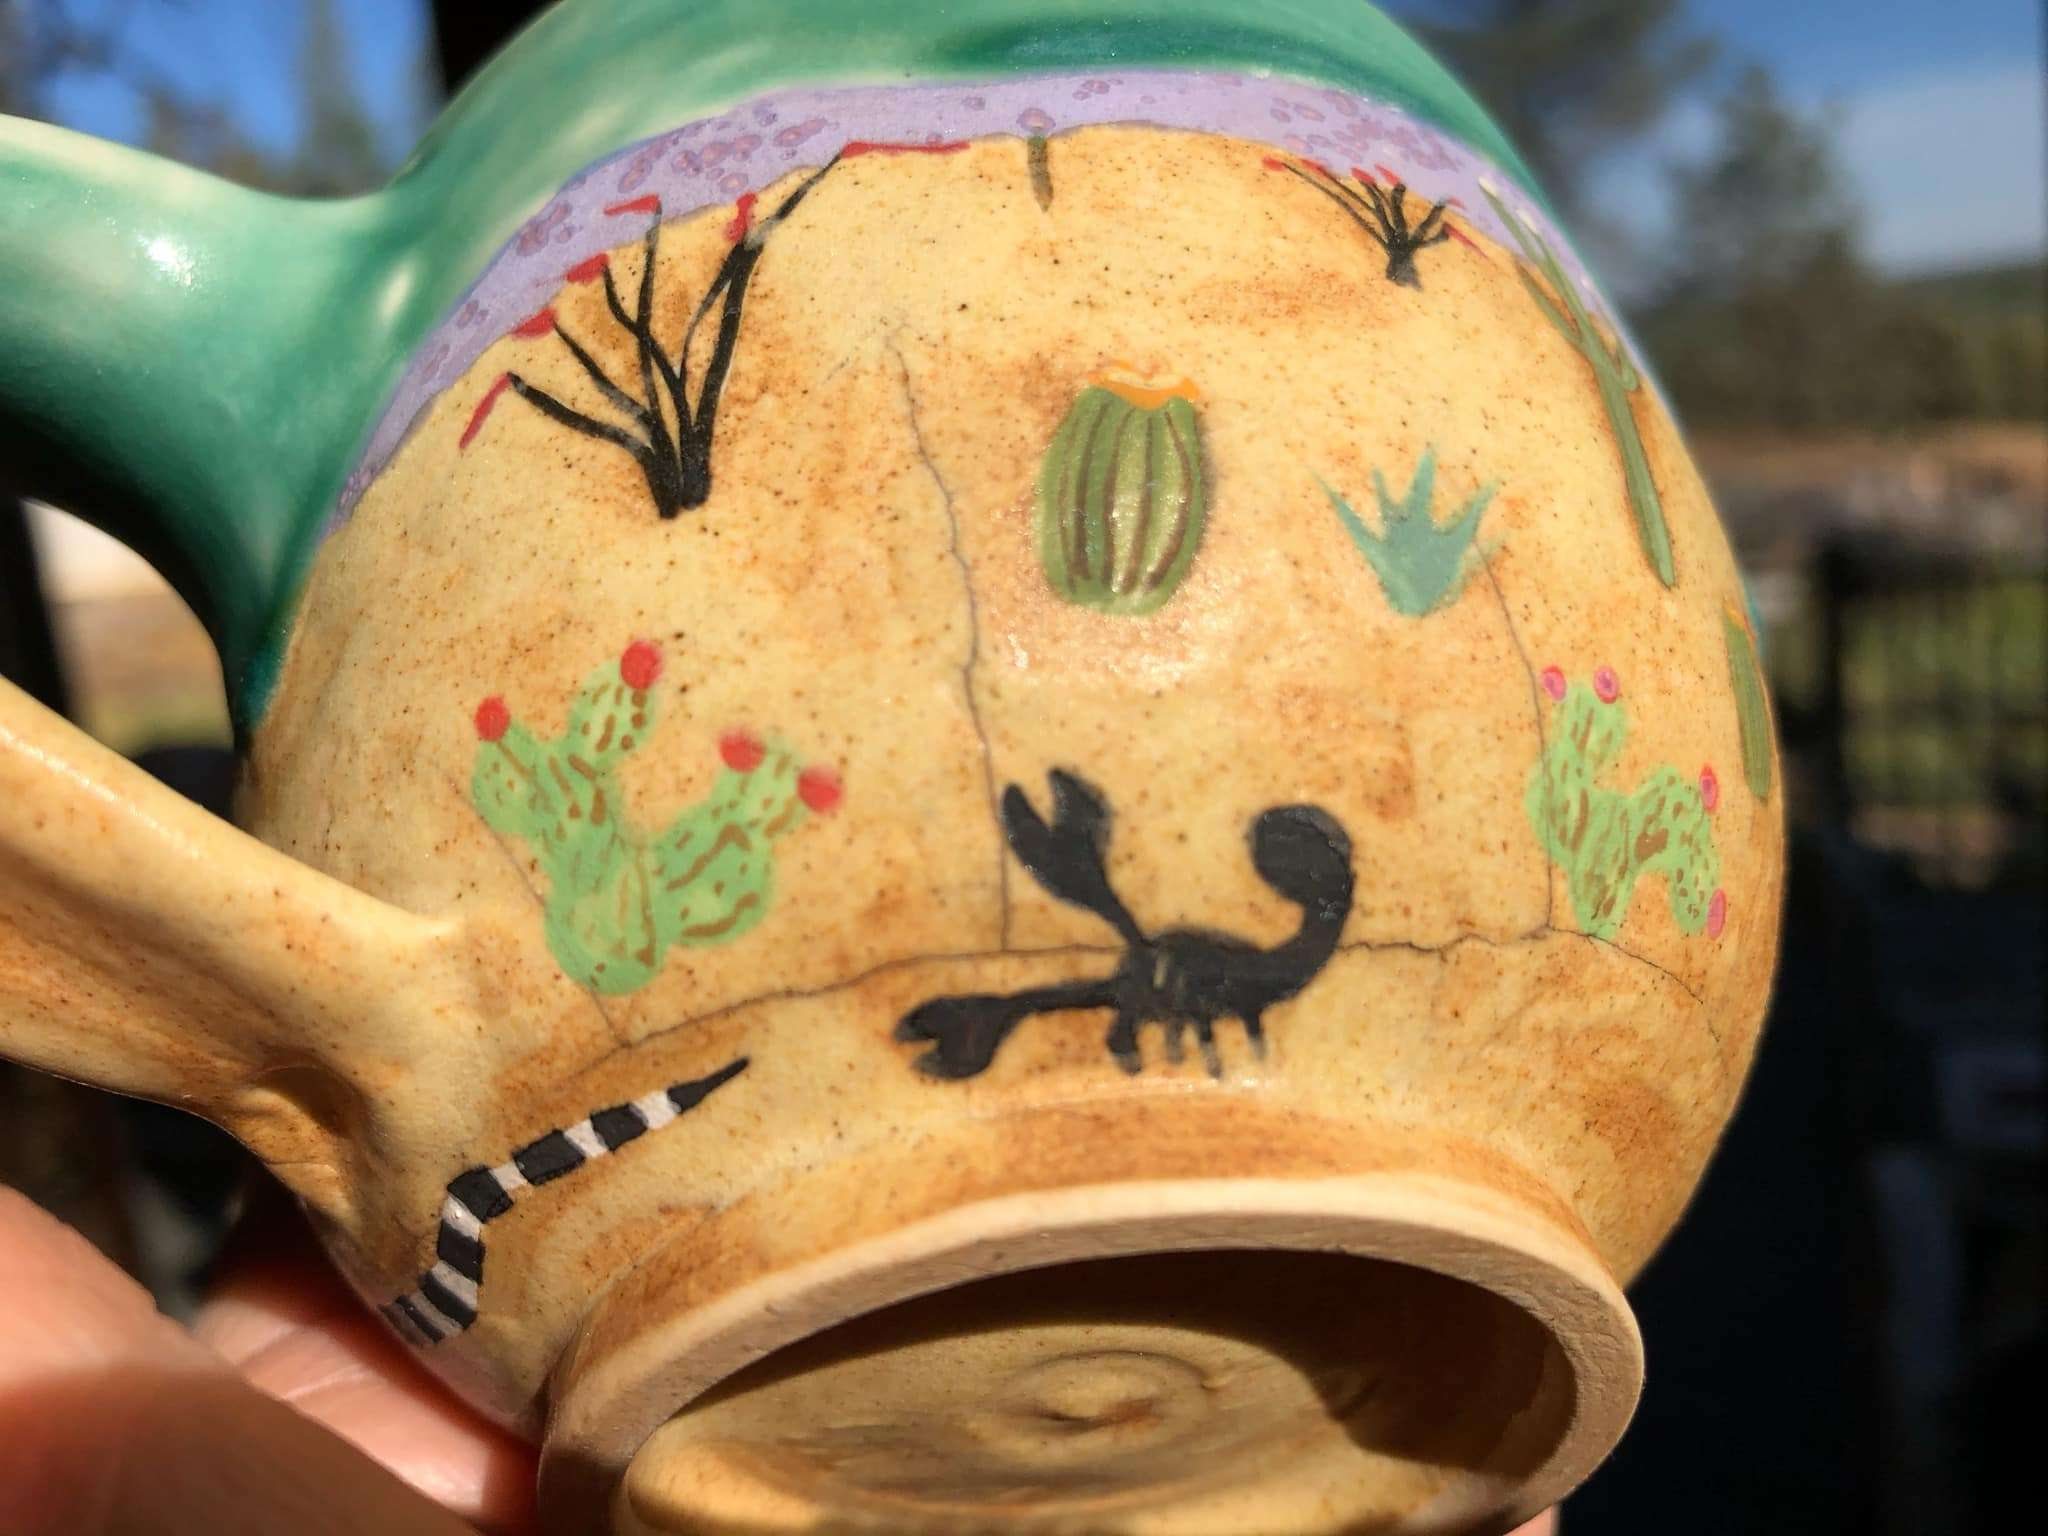 When A Tea Person Moves - A photo of the cup made by Catherine. It has cactus plants and scorpions on it.